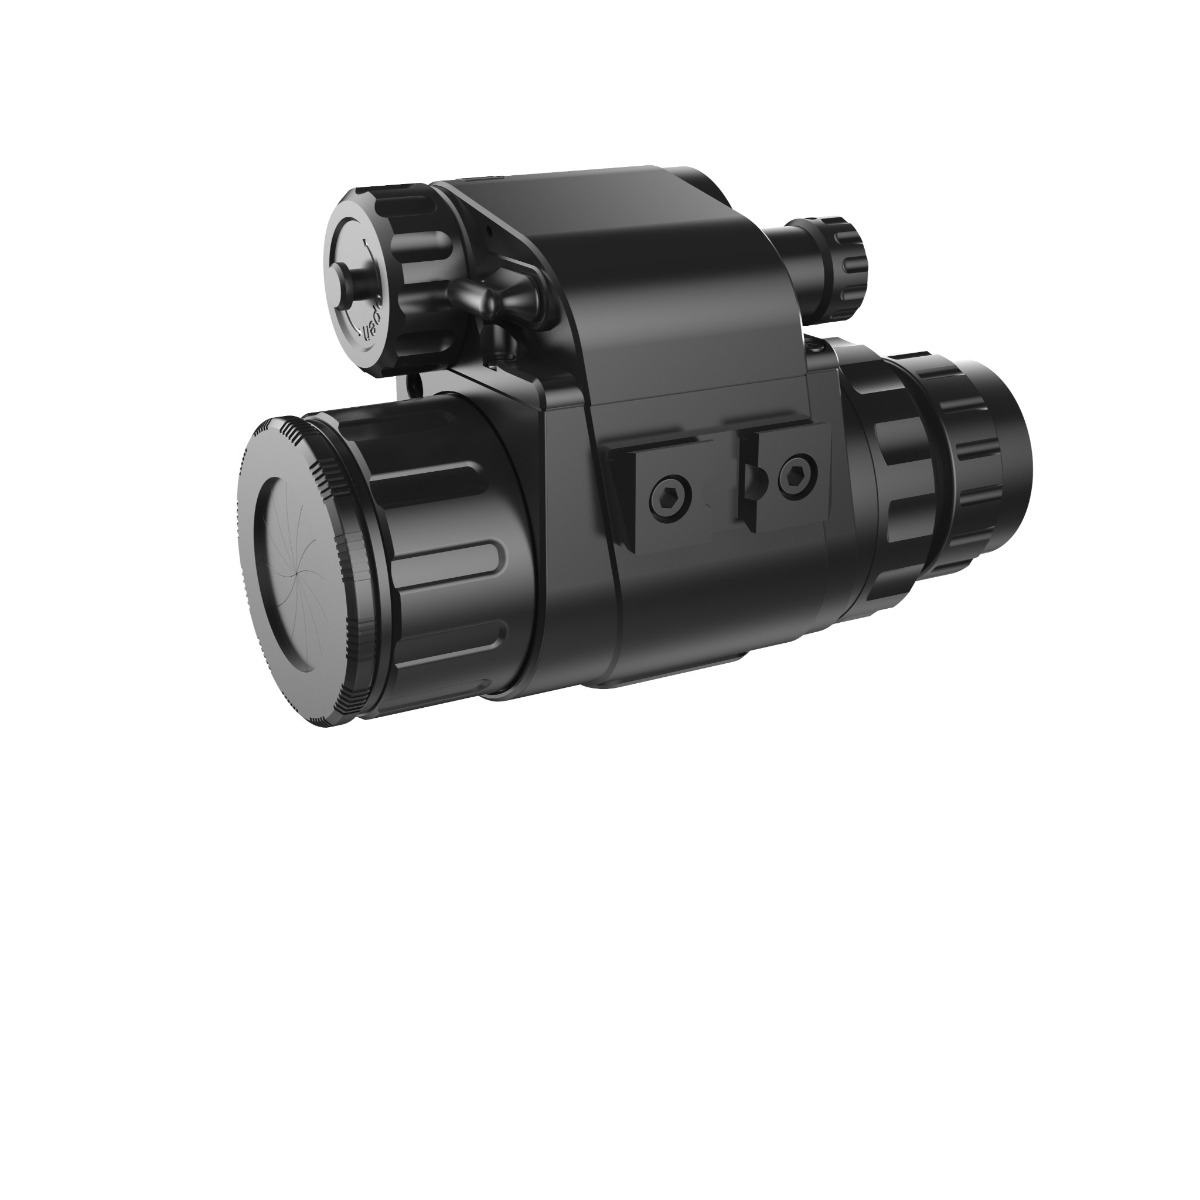 InfiRay 25mm 384x288 CML25 CLIP M Series Thermal Imaging Front Clip-On - 17µm 50mK